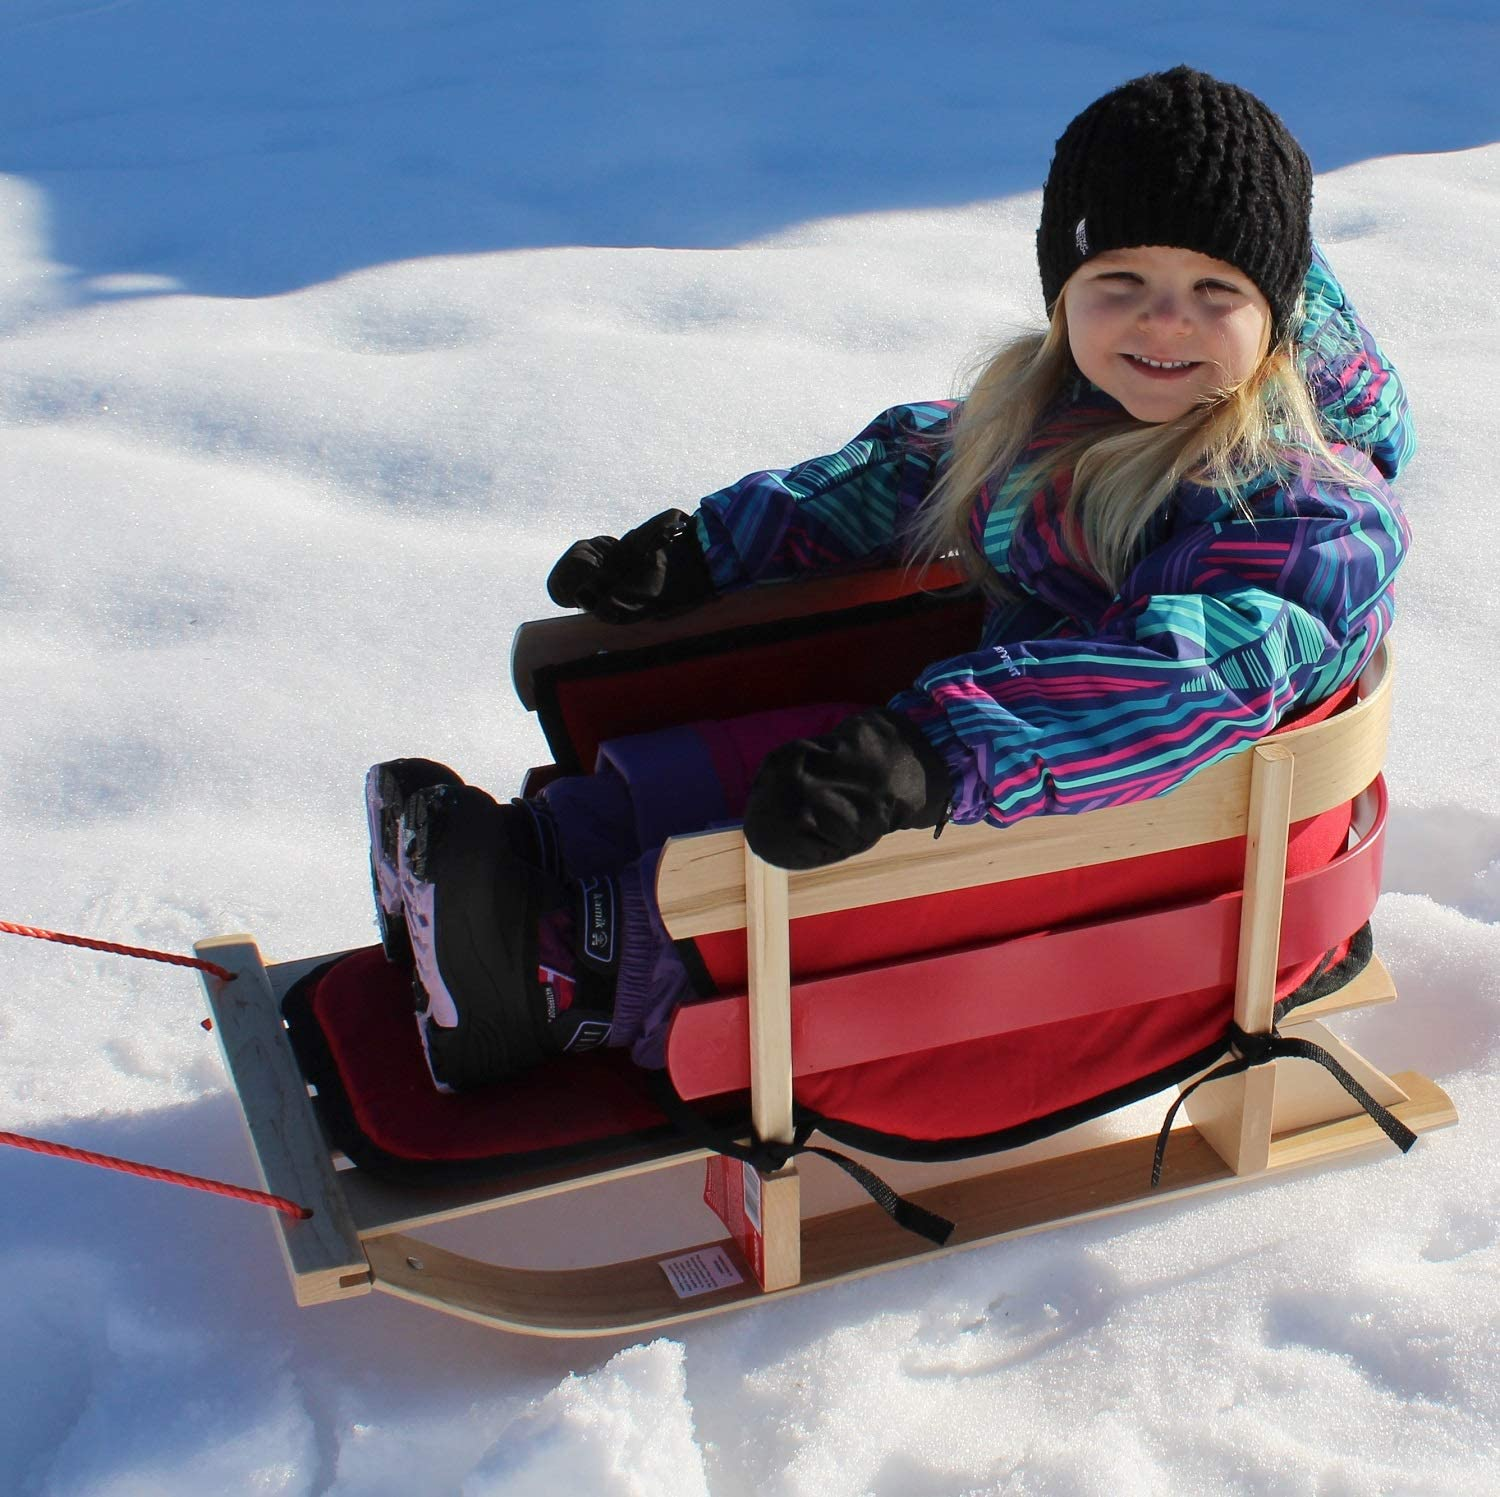 Top 11 Best Sleds For Toddlers For Winter Vacation 2020 6